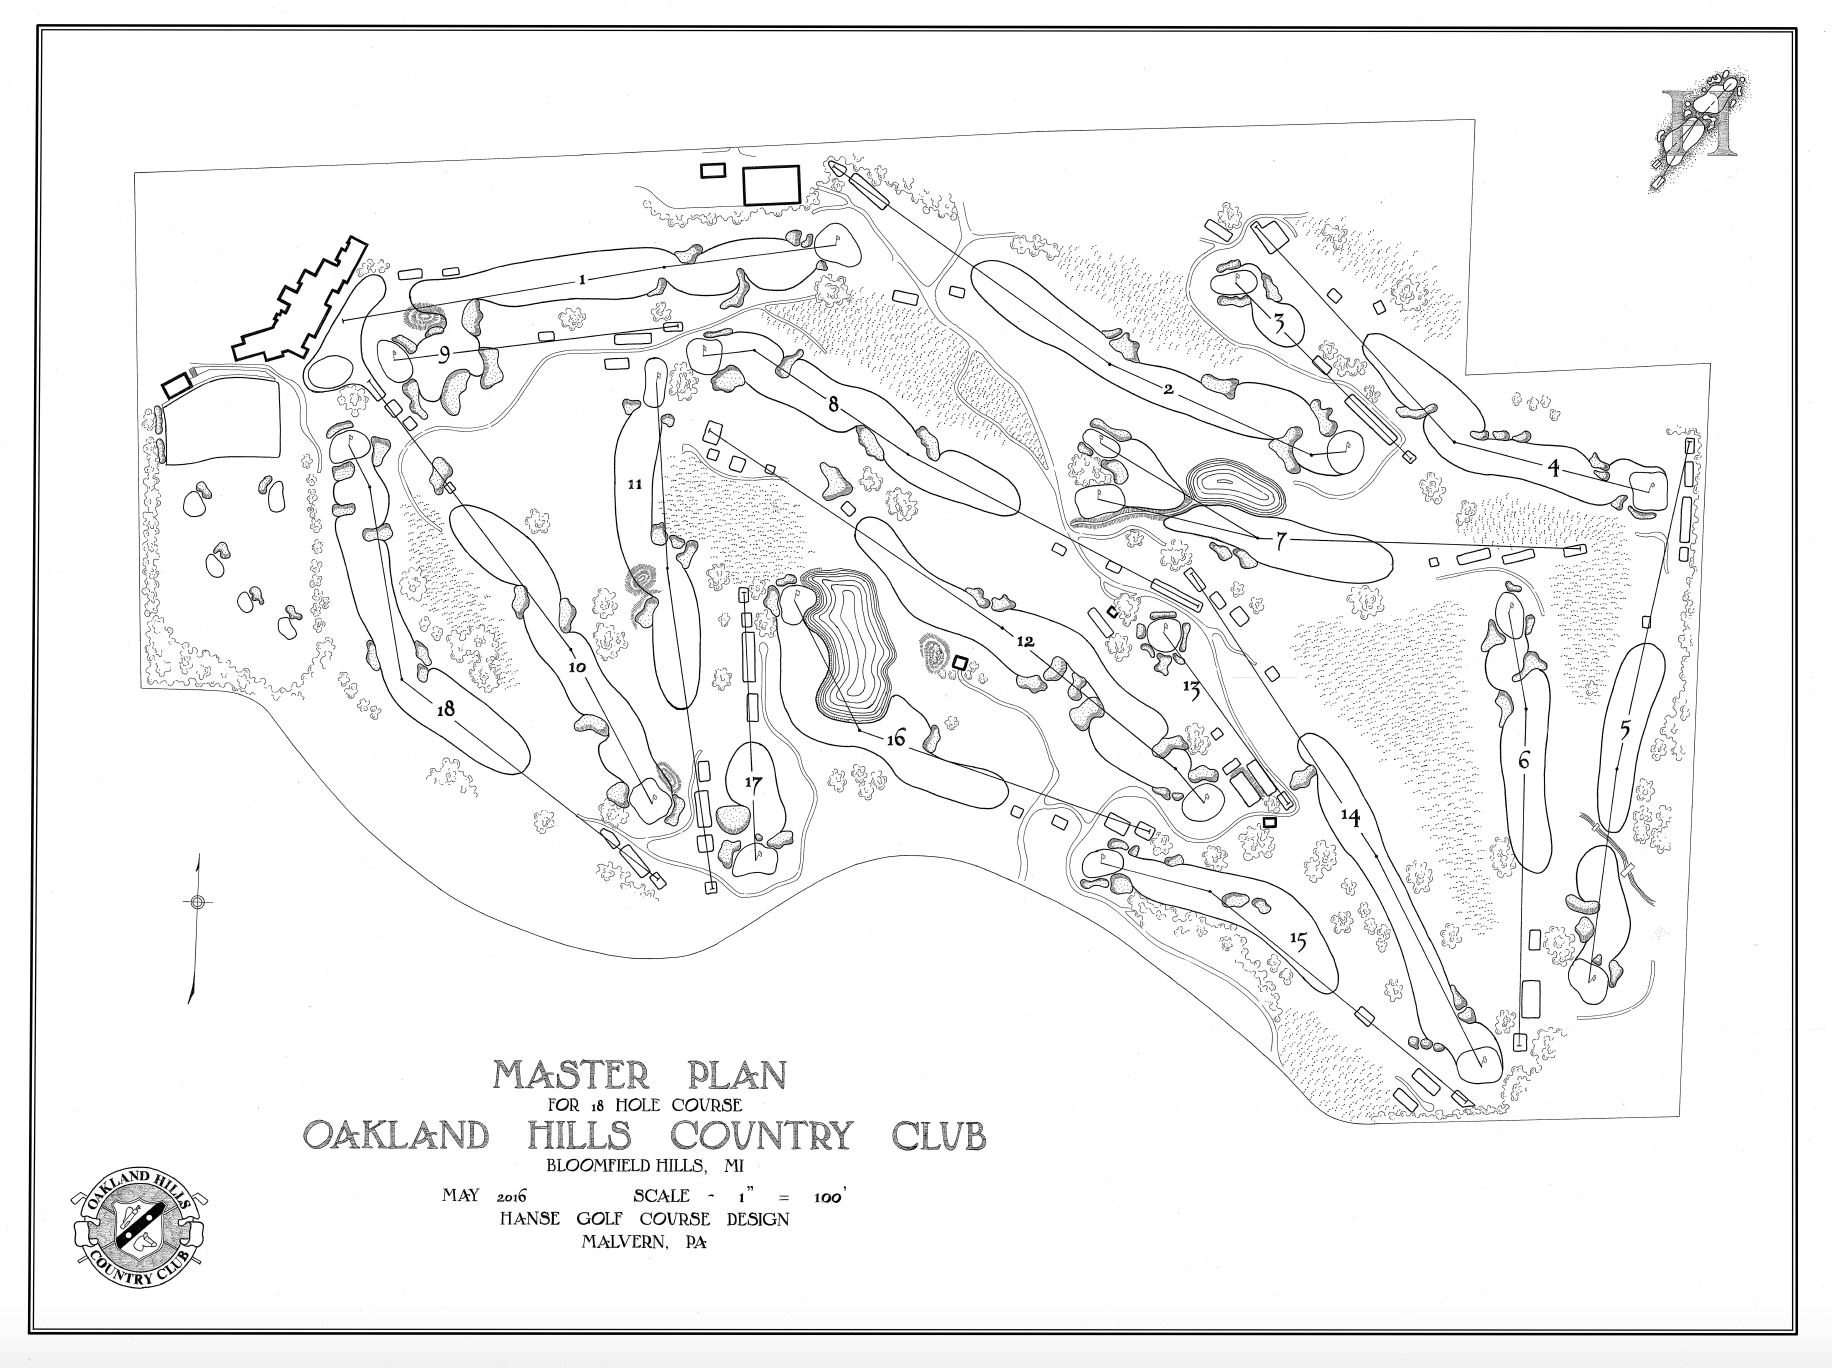 Oakland Hills Country Club  U2013 Hanse Golf Course Design